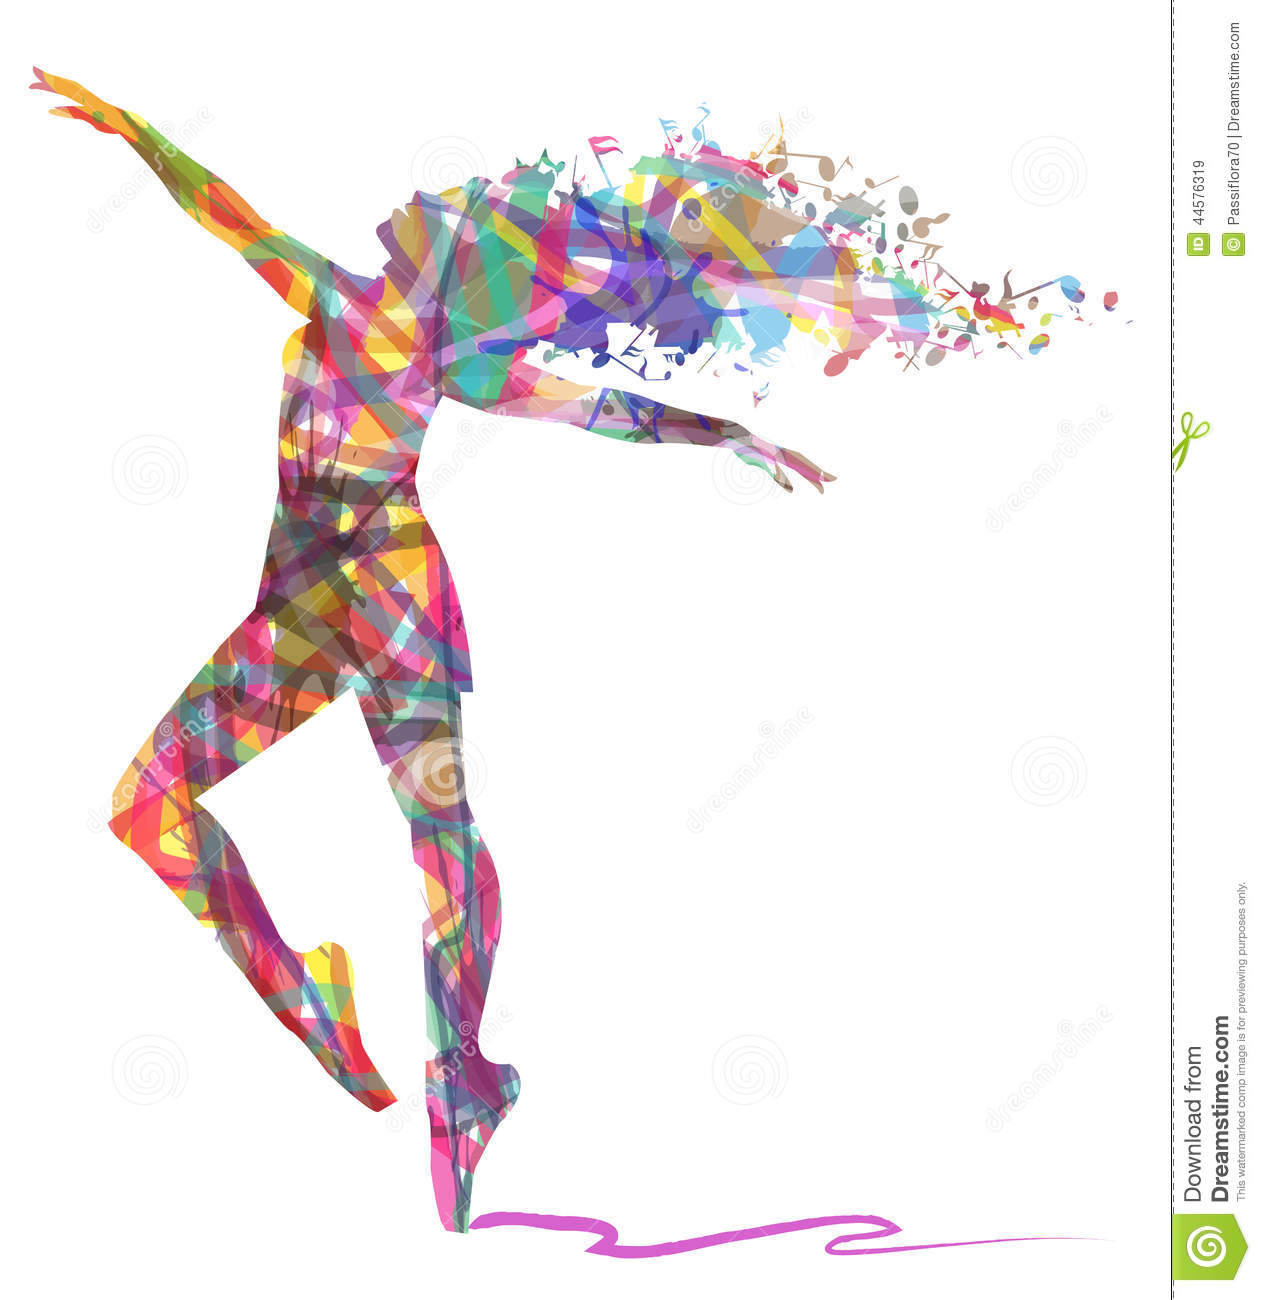 Abstract Painting Of Girl Dancing Abstract Silhouette Of Dancer And Musical Notes Stock